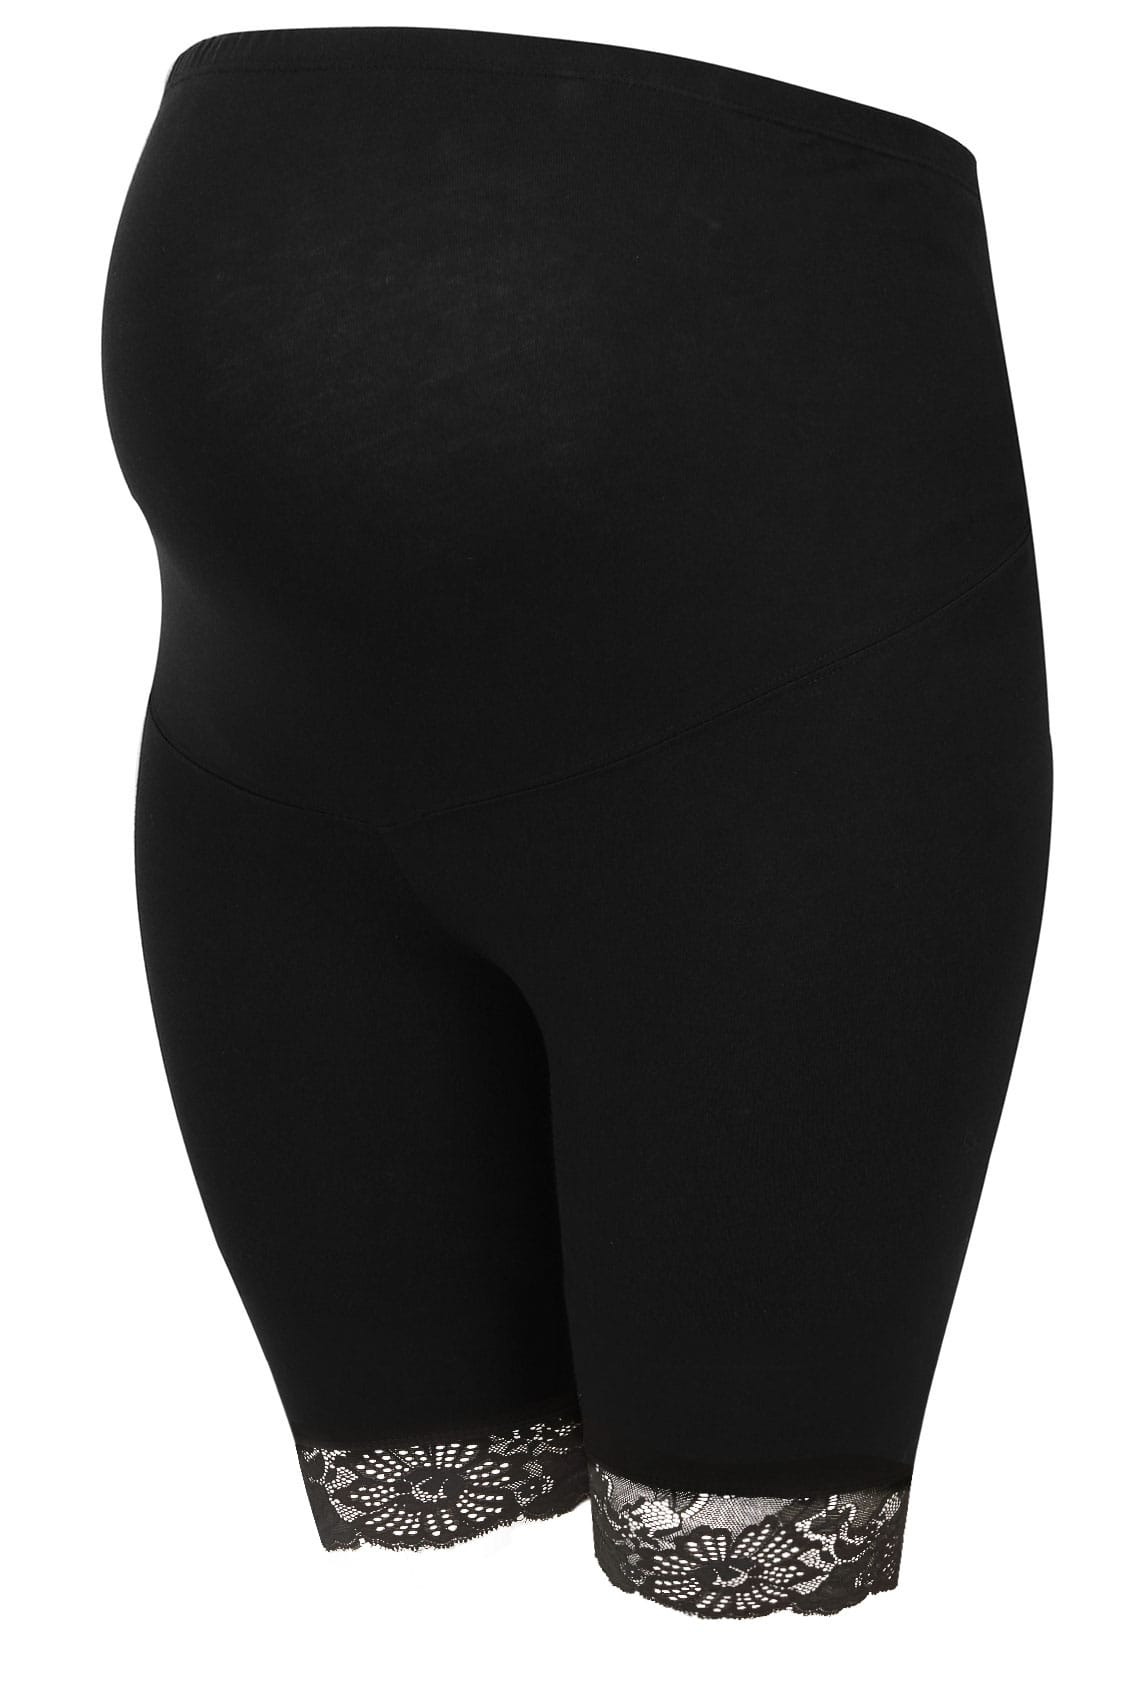 8185fcbed4a BUMP IT UP MATERNITY Black Legging Shorts With Lace Trim